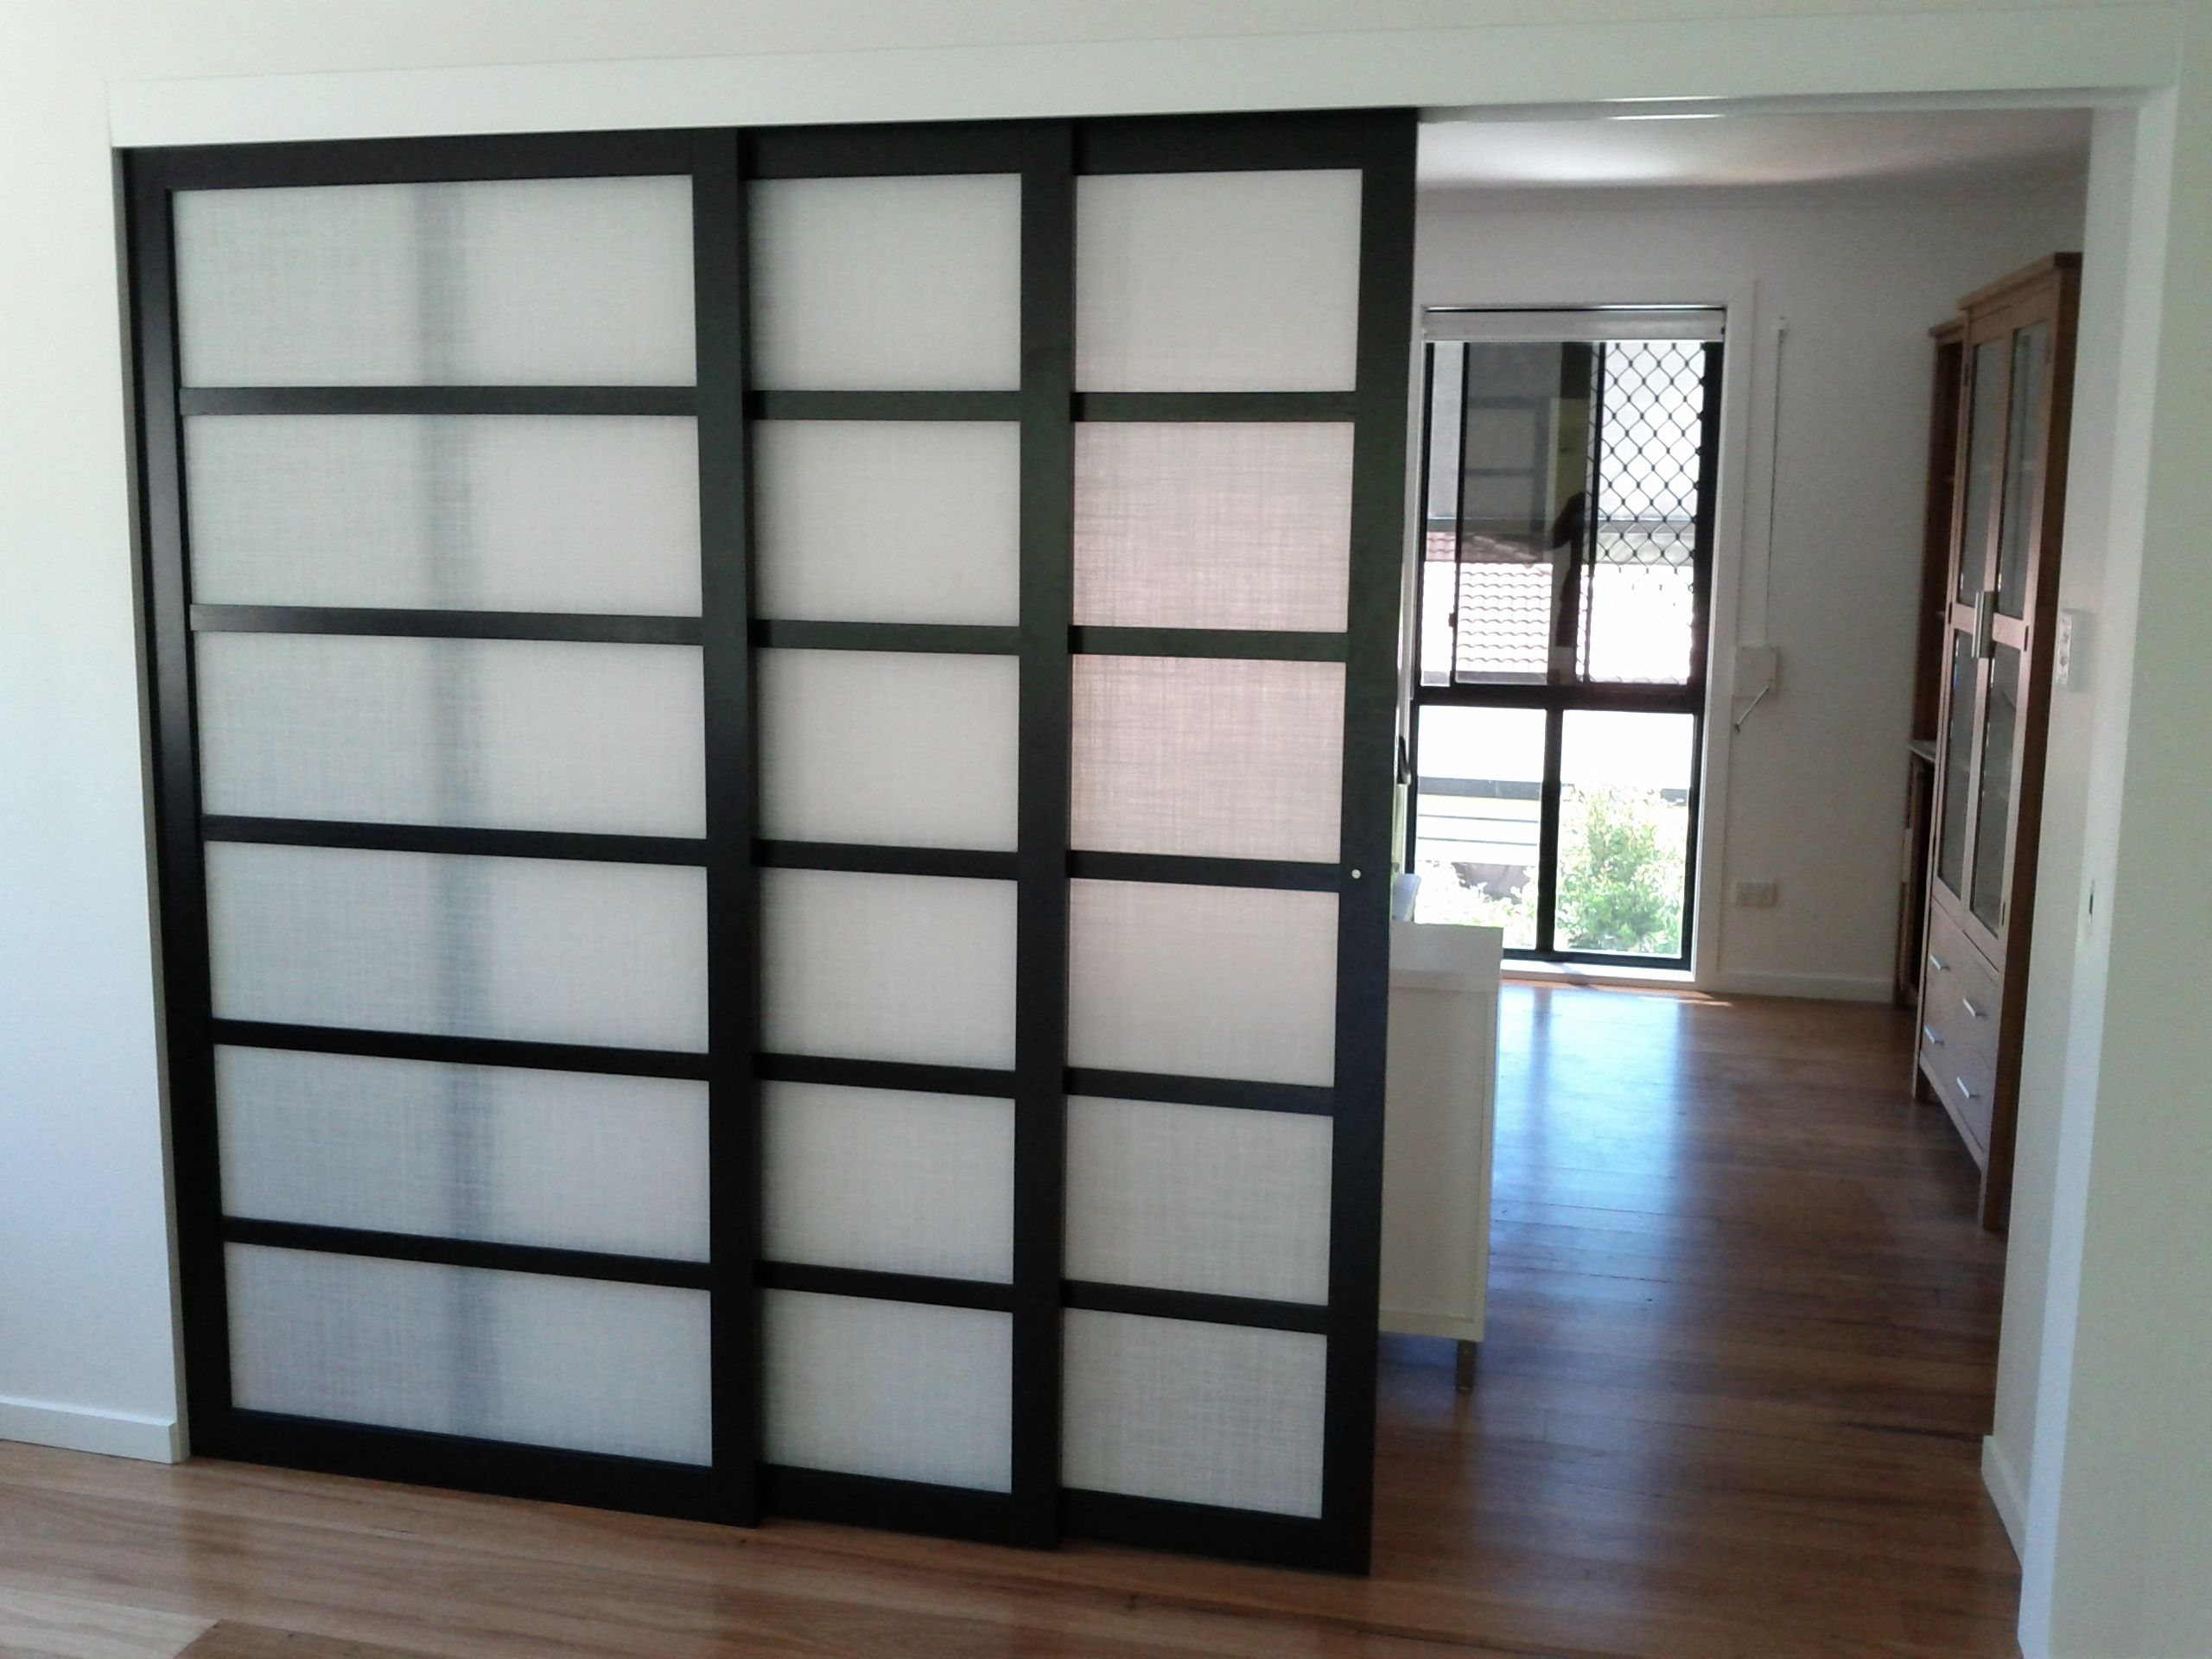 Awesome Room Divider Ideas That Can Work In Nearly Any Space Sliding Room Dividers Room Divider Doors Bedroom Divider